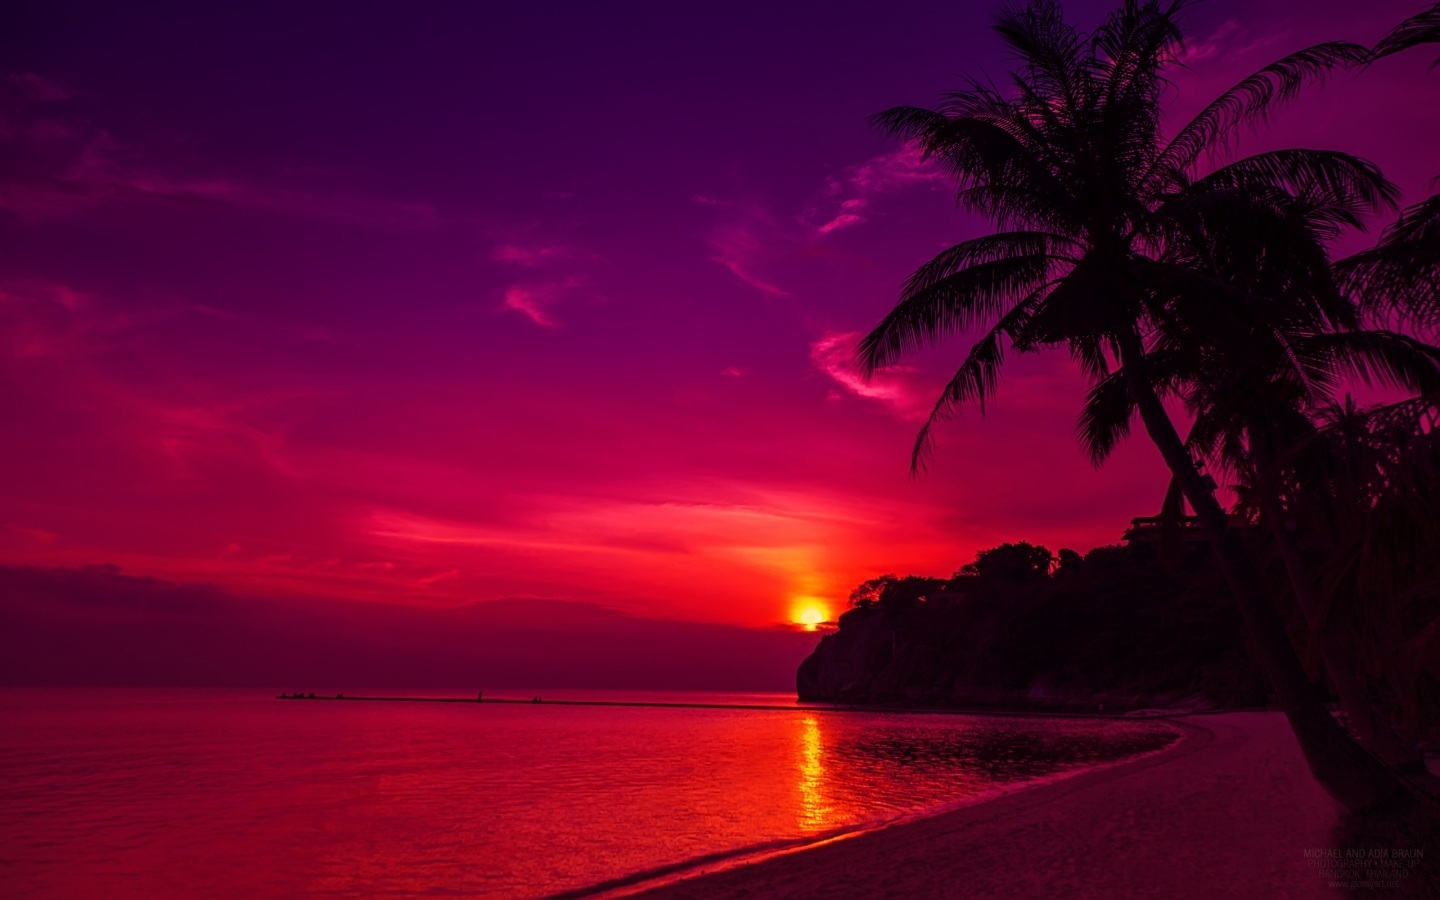 Purple Sunset wallpaper | 1440x900 | #75576